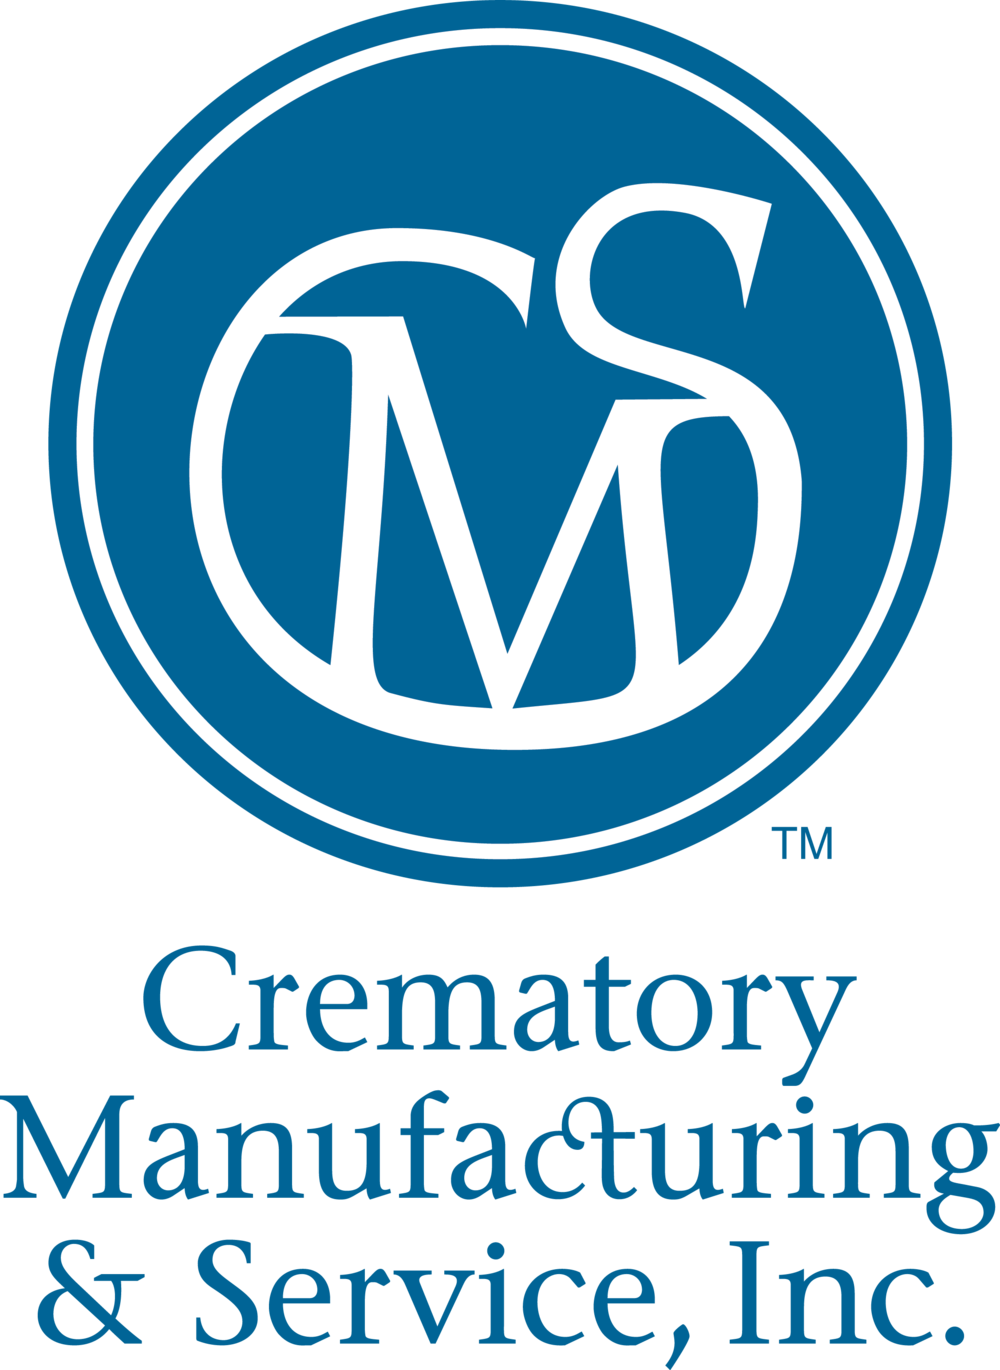 Our Company Crematory Manufacturing Service